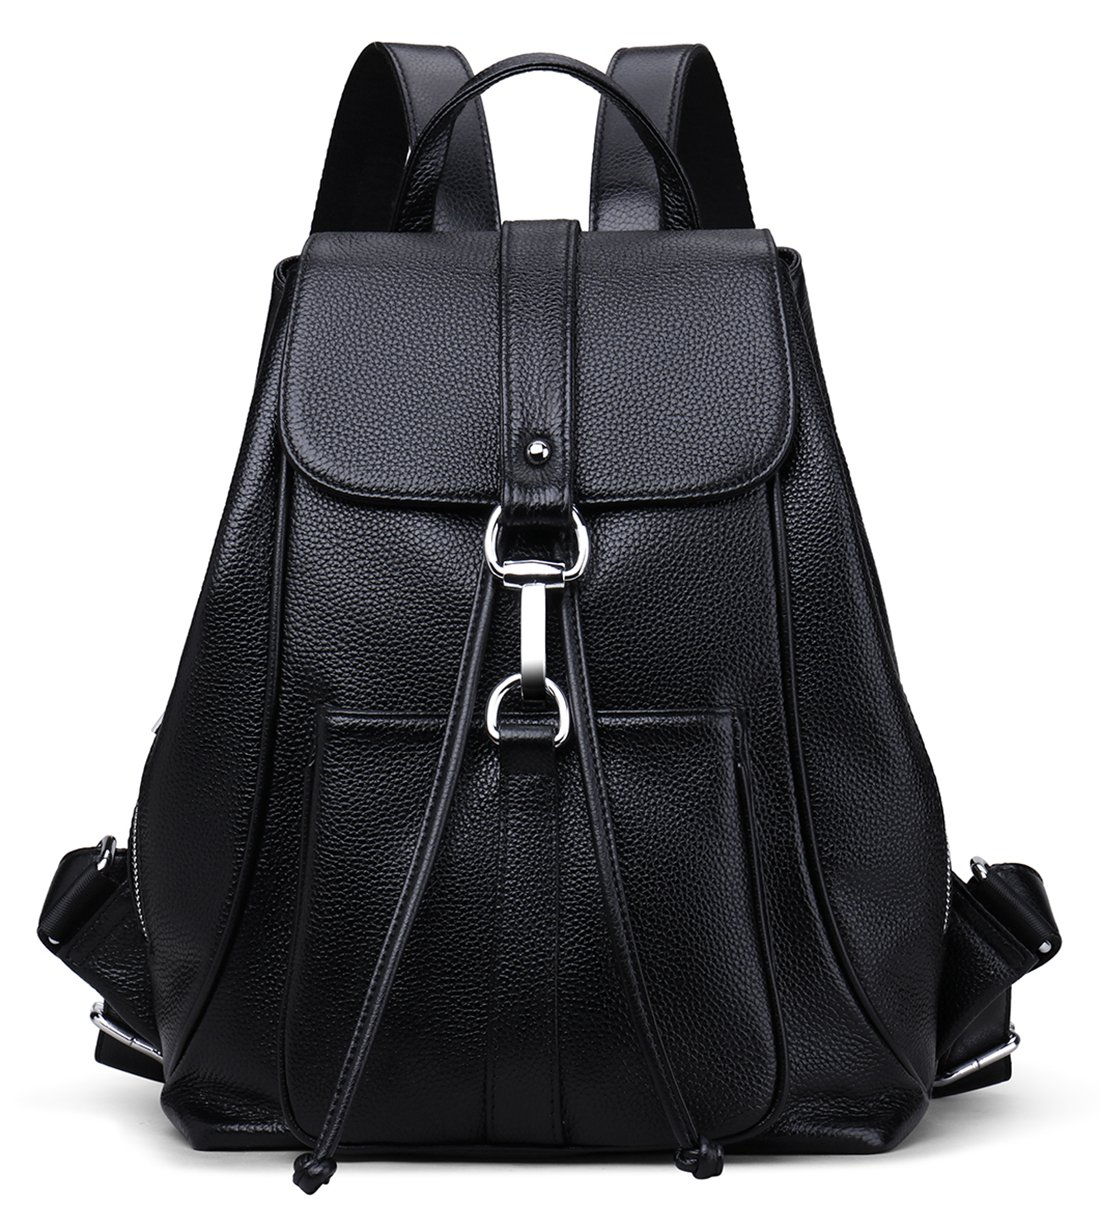 New vintage Women Real Genuine Leather Backpack Purse SchoolBag by Coolcy (Black) by COOLCY